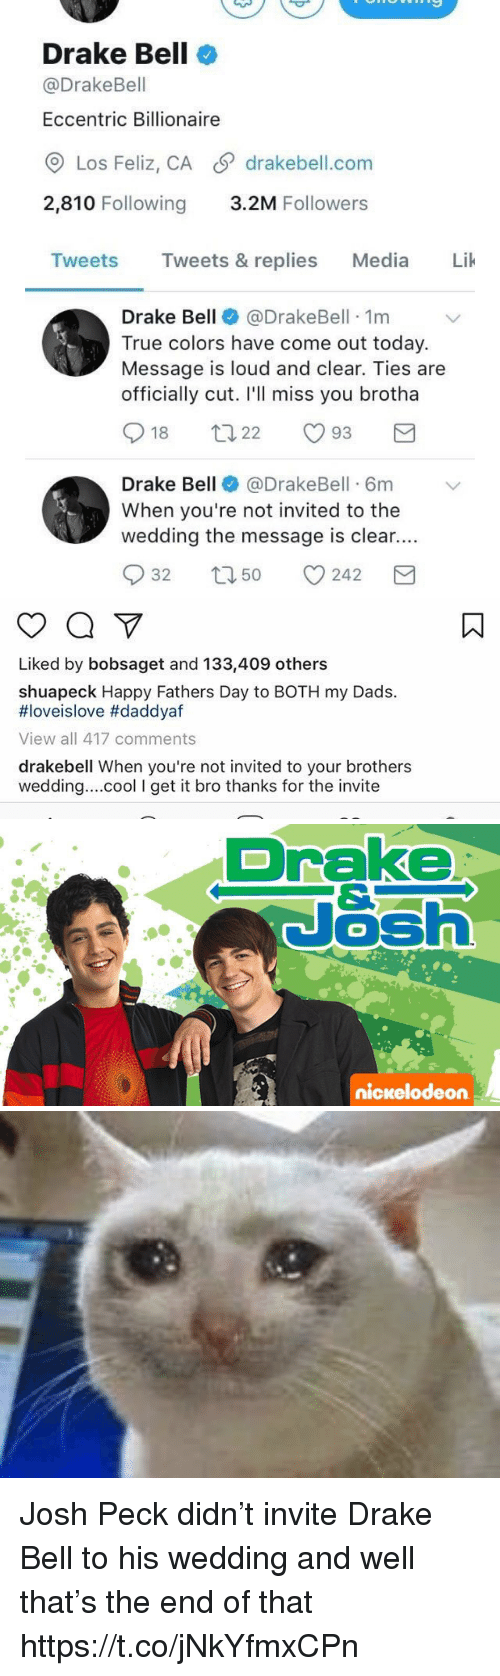 Josh Peck: Drake Bell  @Drake Bell  Eccentric Billionaire  CO Los Feliz, CA SP drakebell.com  2,810 Following  3.2M Followers  Tweets  Tweets & replies  Media  Lik  Drake Bell  @Drake Bell 1m  True colors have come out today.  Message is loud and clear. Ties are  officially cut. I'll miss you brotha  S t 22  18  93  Drake Bell  @DrakeBell 6m v  When you're not invited to the  wedding the message is clear....  S 32 t 50 242  M   Liked by bobsaget and 133,409 others  shuapeck Happy Fathers Day to BOTH my Dads.  HIoveislove #daddyaf  View all 417 comments  drakebell When you're not invited to your brothers  wedding....cool I get it bro thanks for the invite   Drake  Nash  nickelodeon Josh Peck didn't invite Drake Bell to his wedding and well that's the end of that https://t.co/jNkYfmxCPn